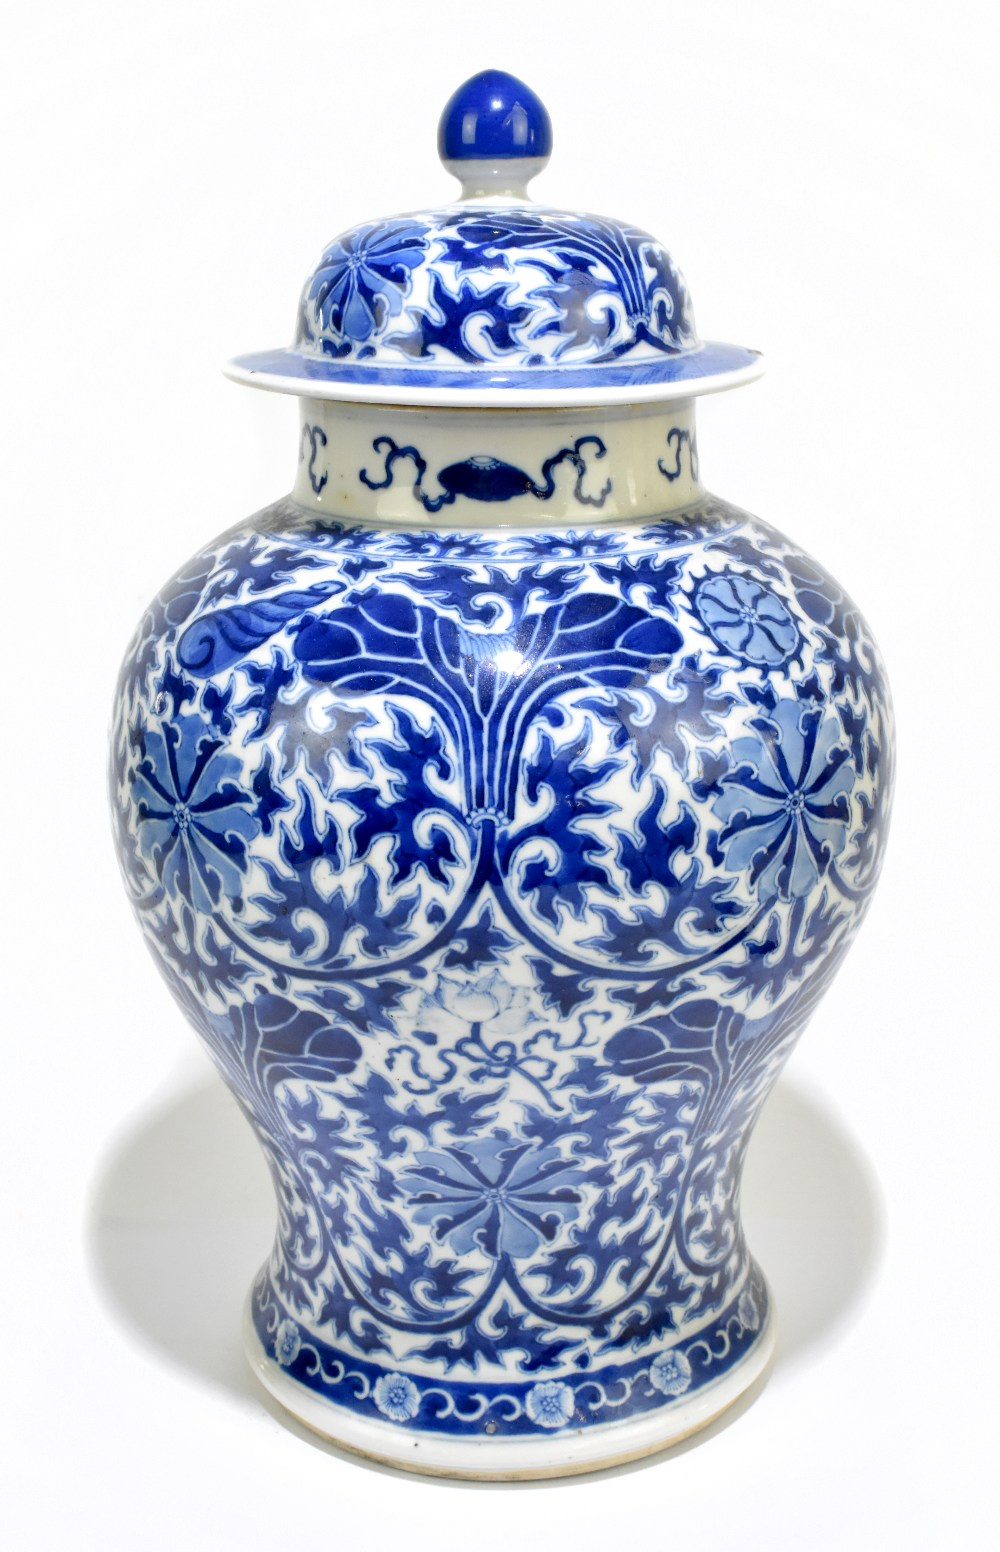 A late 19th century Chinese blue and white porcelain temple jar and cover, the top rim painted